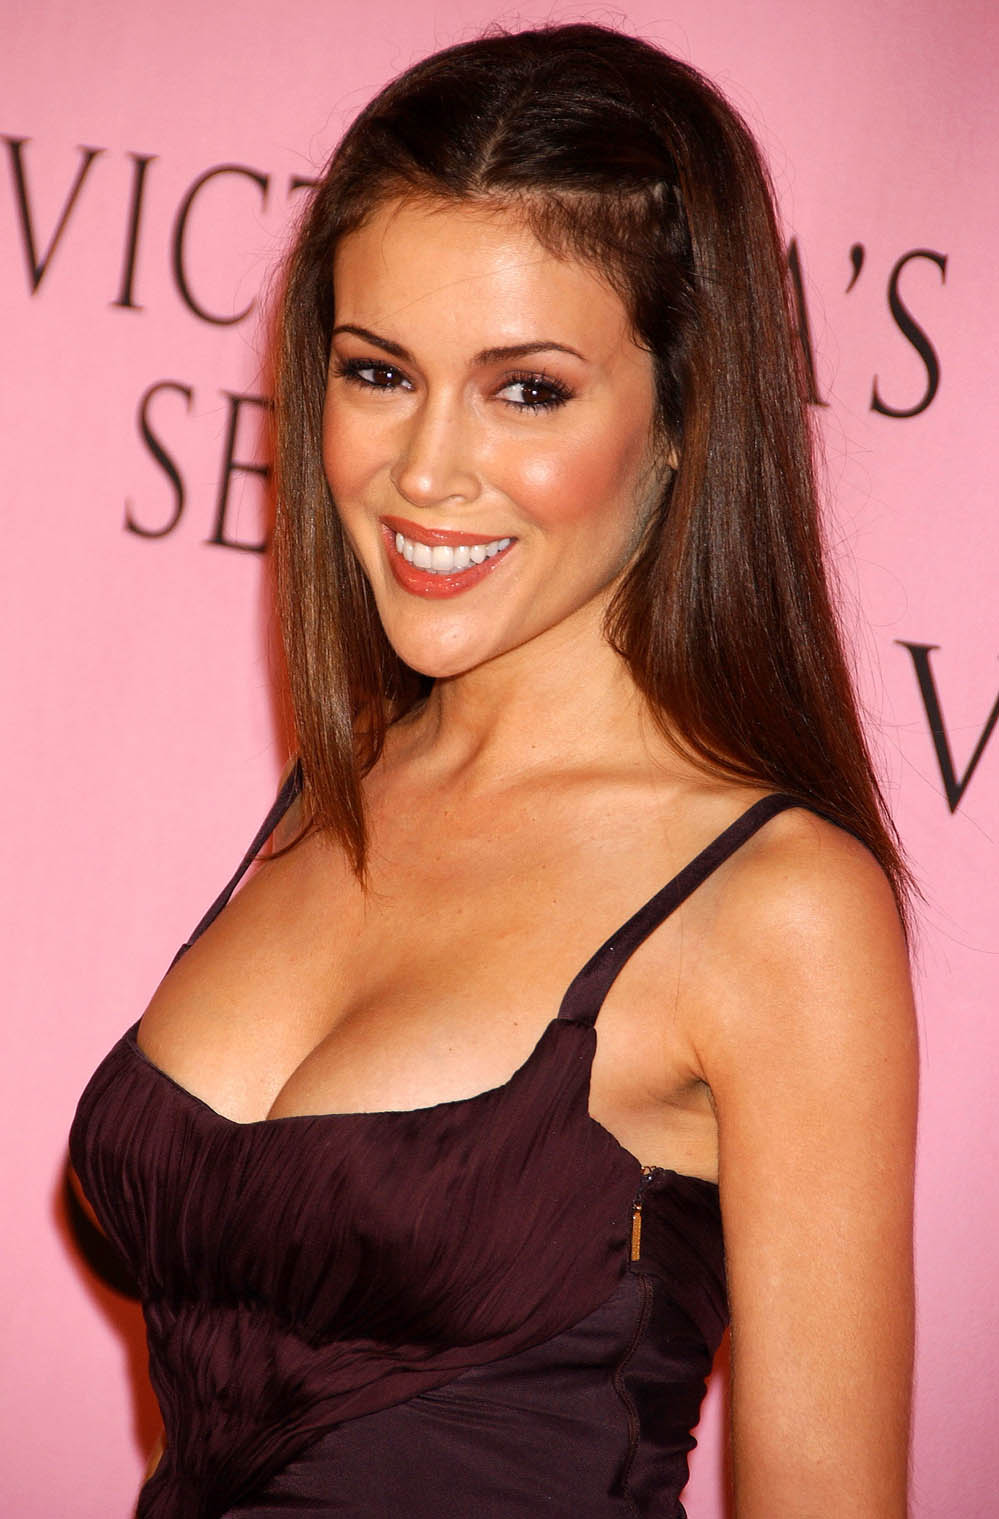 alyssa milano celebrities - photo #18